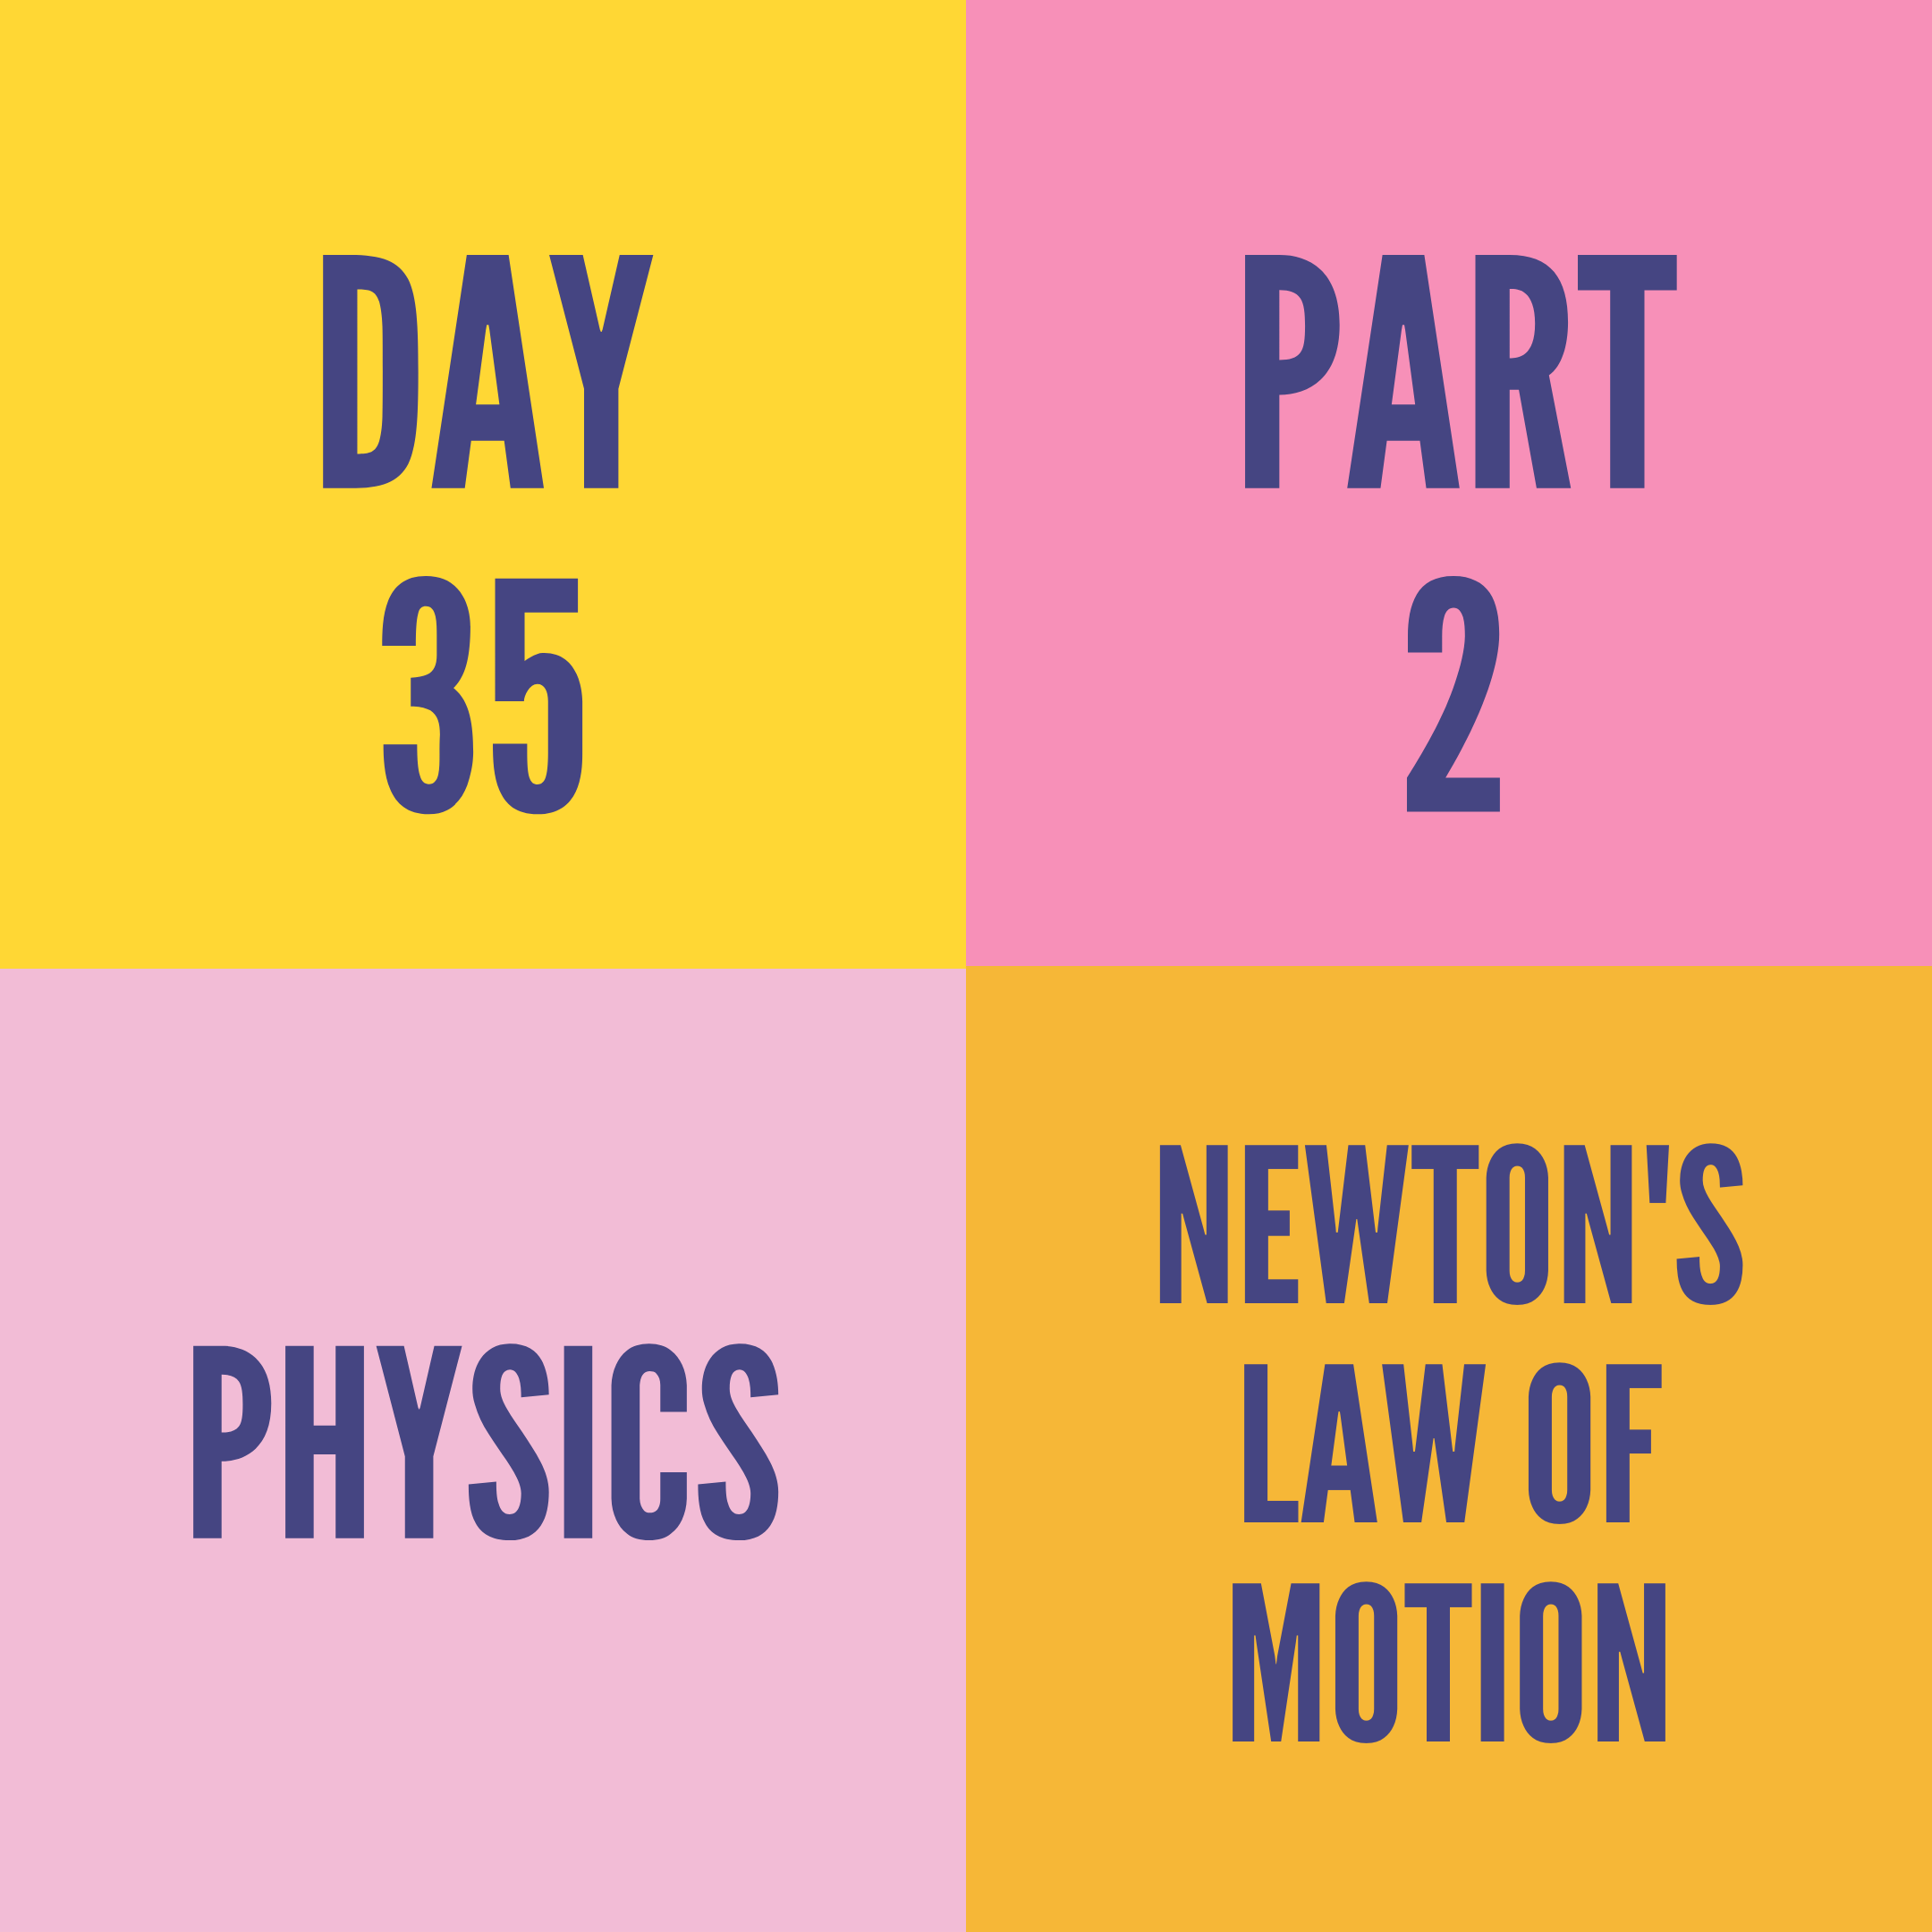 DAY-35 PART-2 NEWTON'S LAW OF MOTION